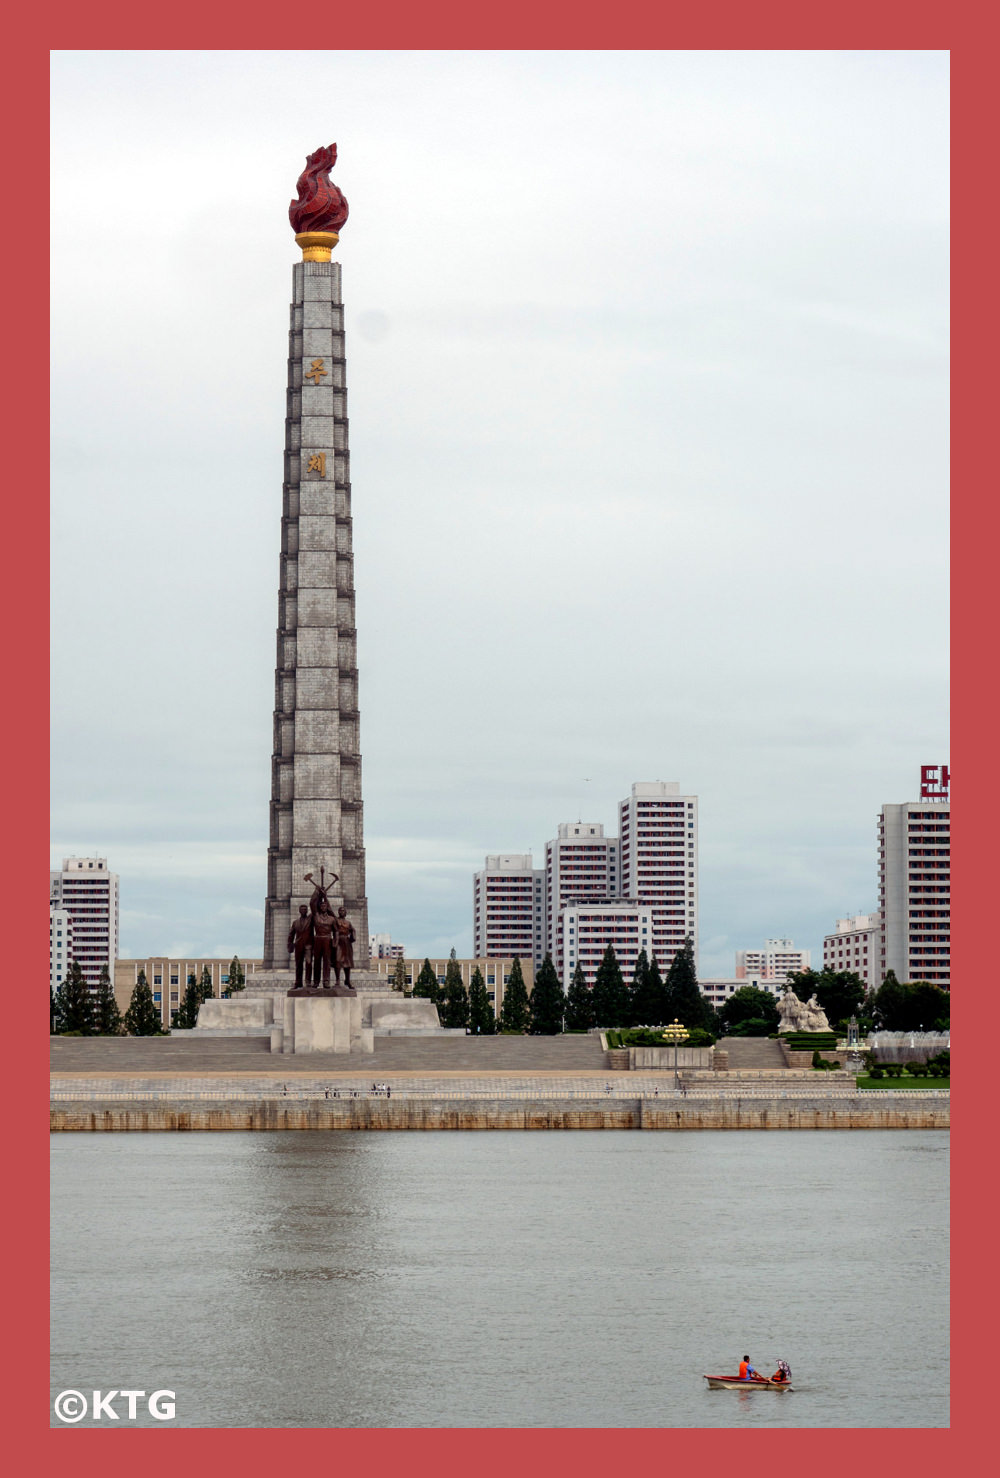 Couple rowing a boat on the Taedong River by the Juche Tower in Pyongyang capital of North Korea. DPRK Trip arranged by KTG Tours